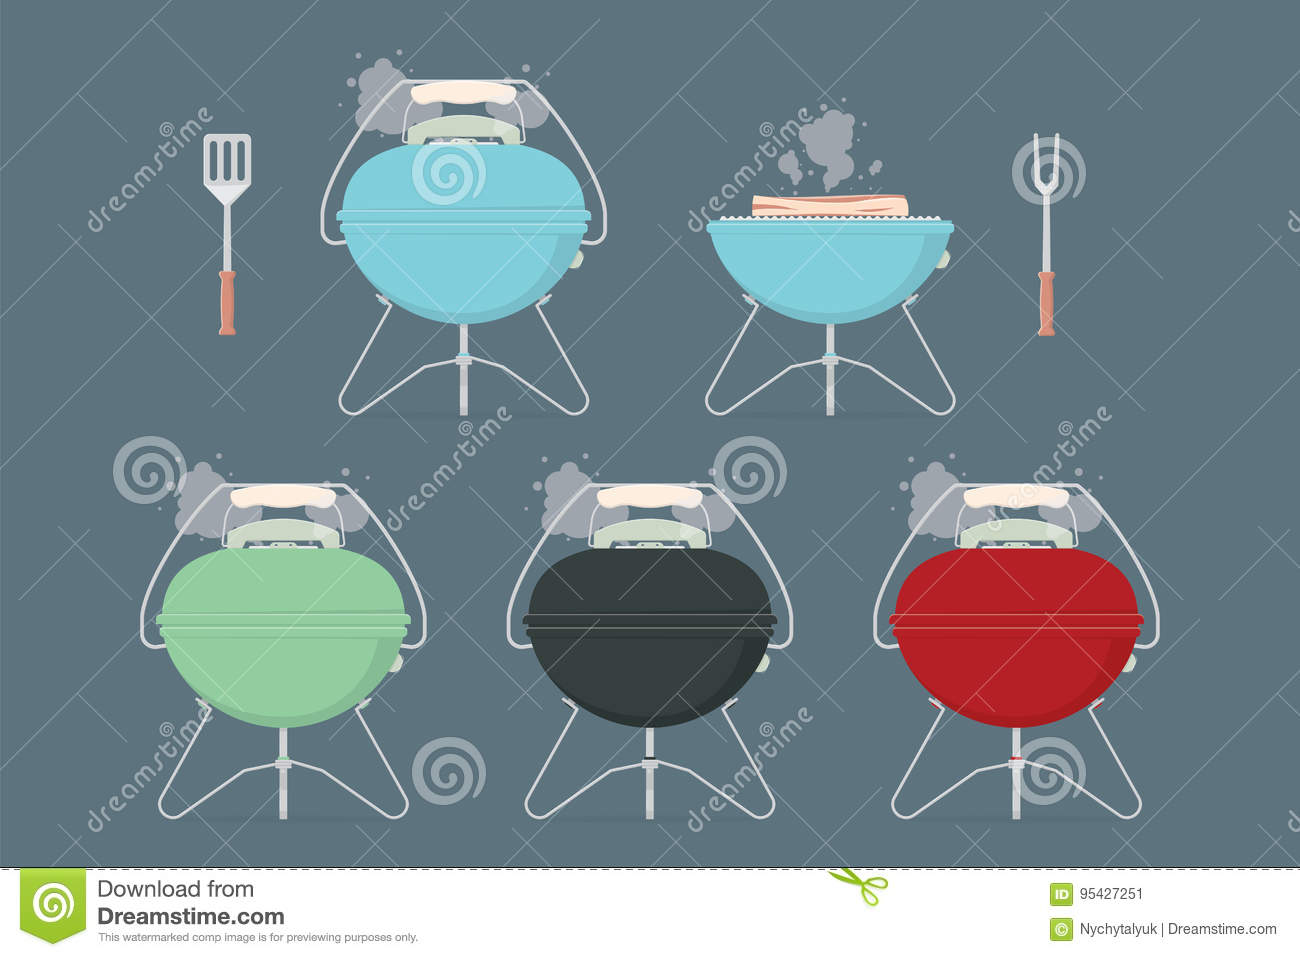 Barbecue Grill Elements For Restaurant Menu Or Weekend Outdoor Lunch Or Picnic Retro Color Flat Design Vector Illustration Stock Vector Illustration Of Elements Party 95427251